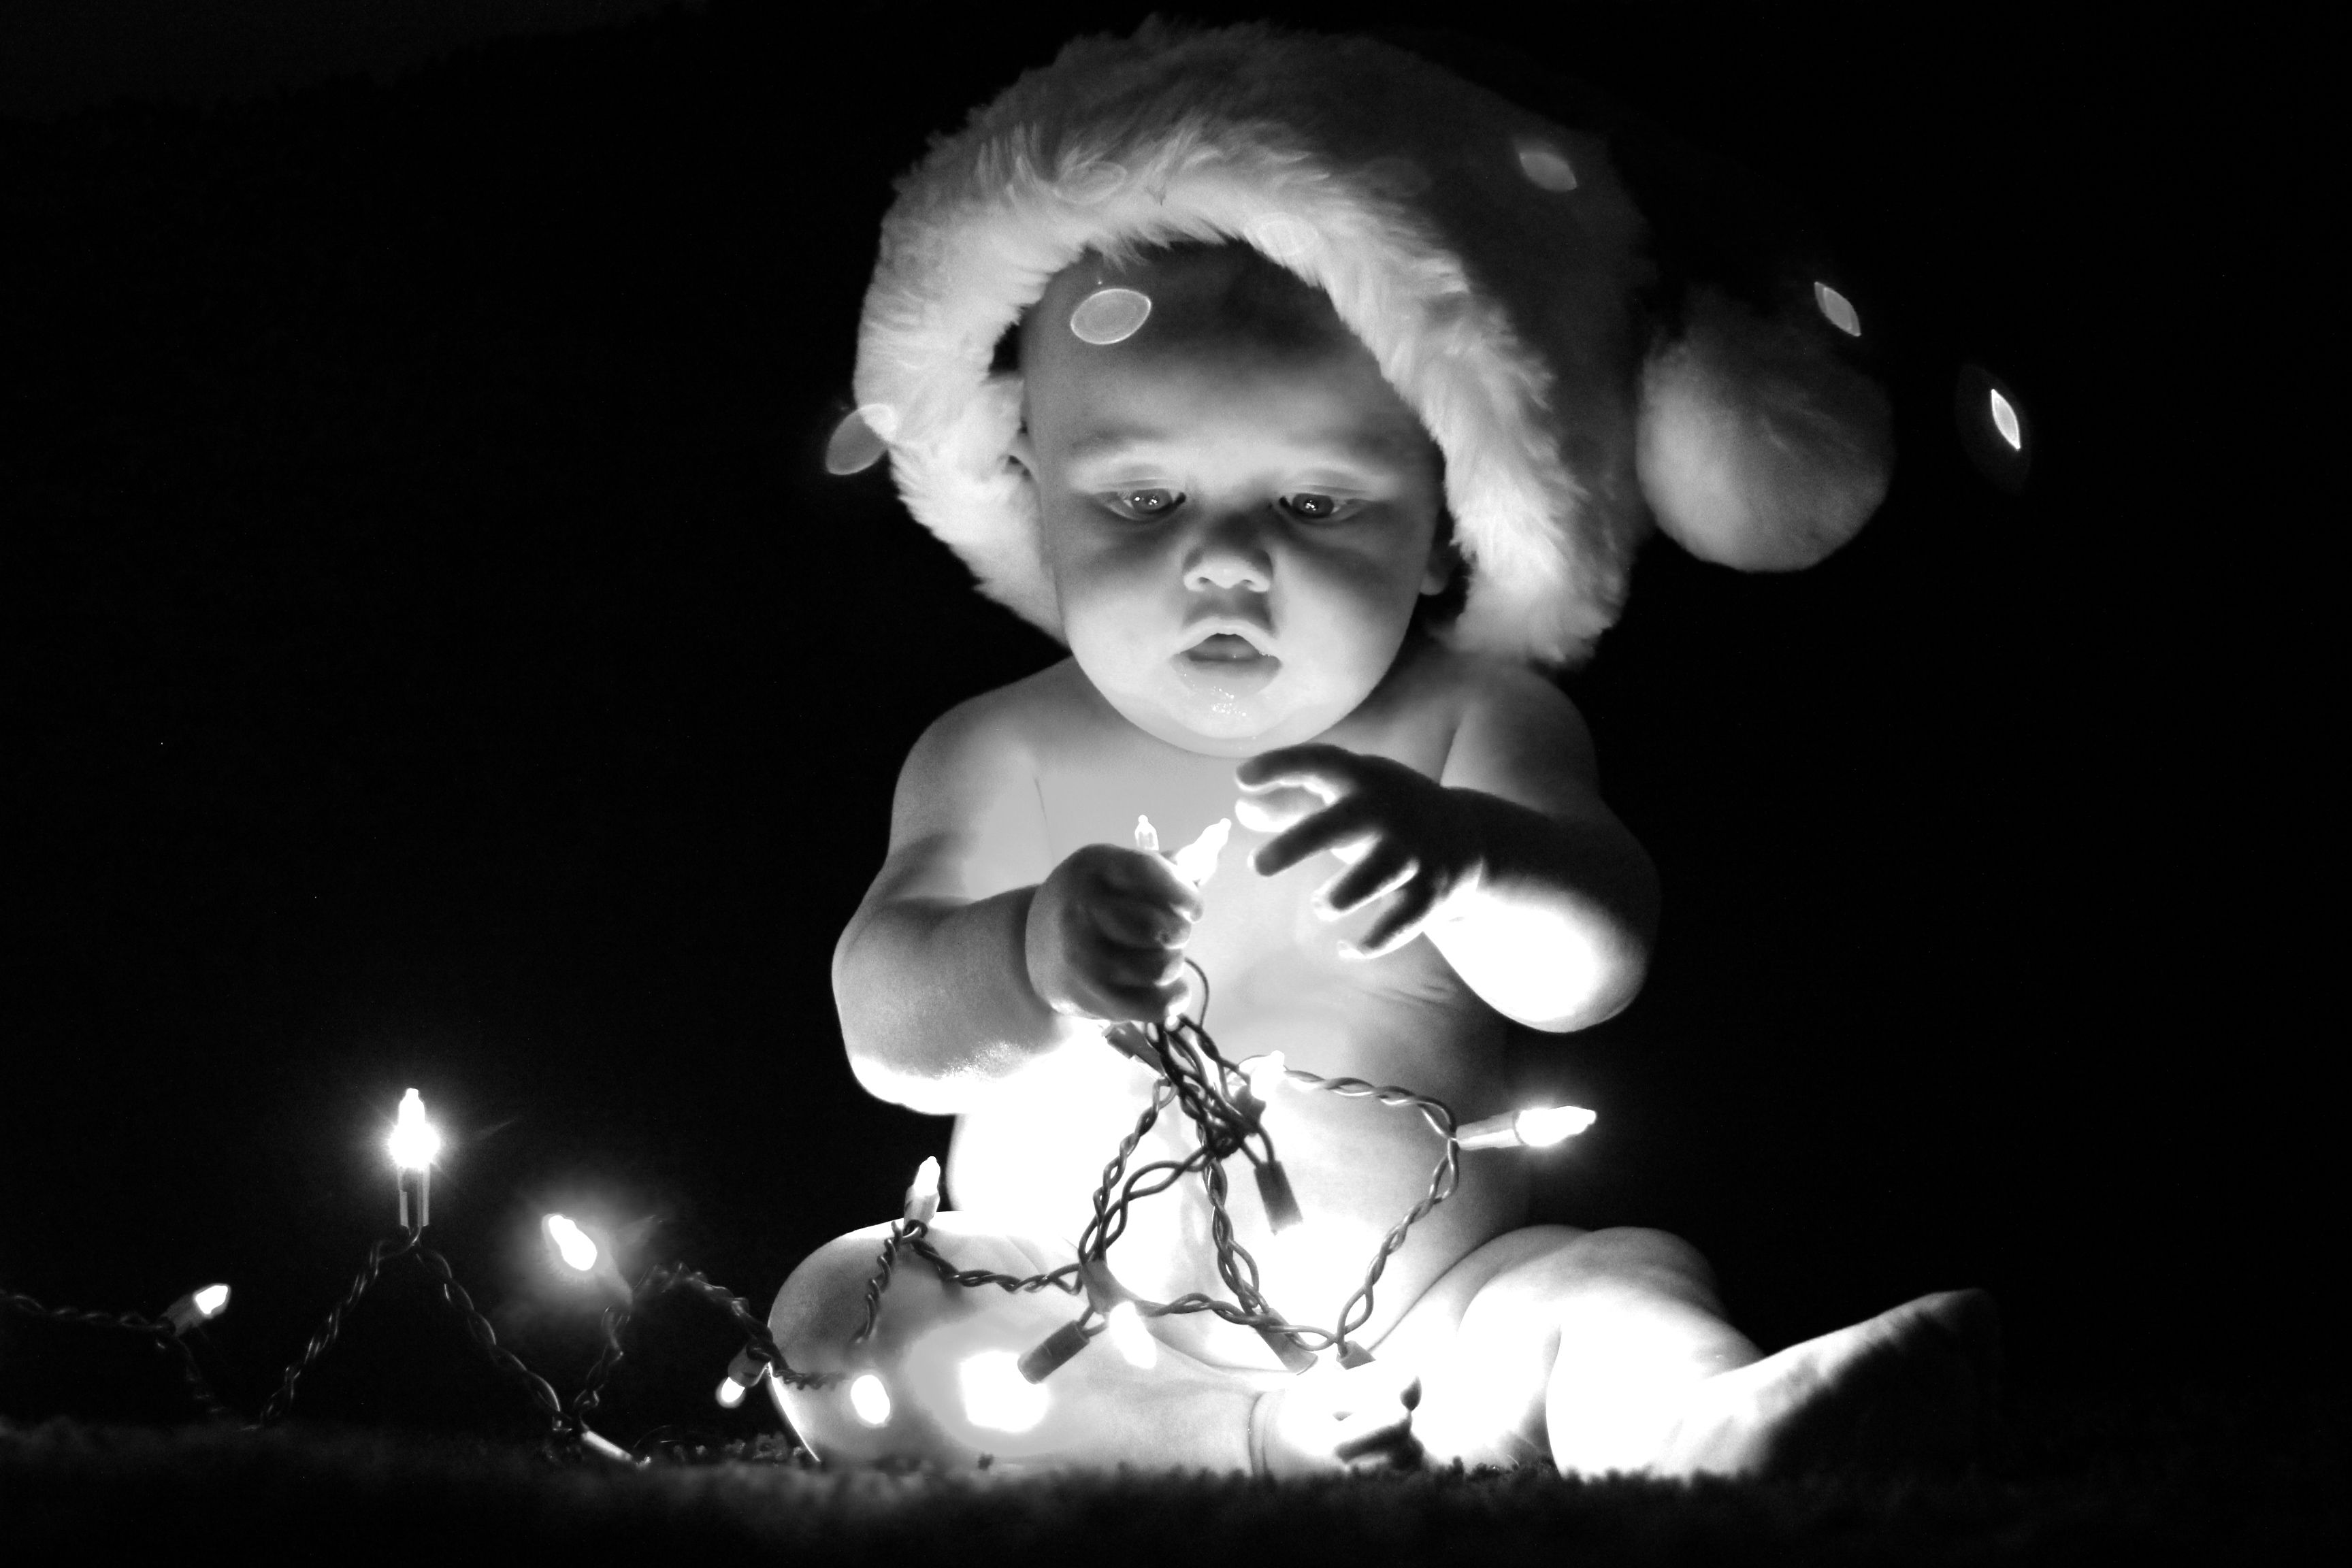 Cute baby Christmas photo with Christmas lights. | Fun baby pictures ...